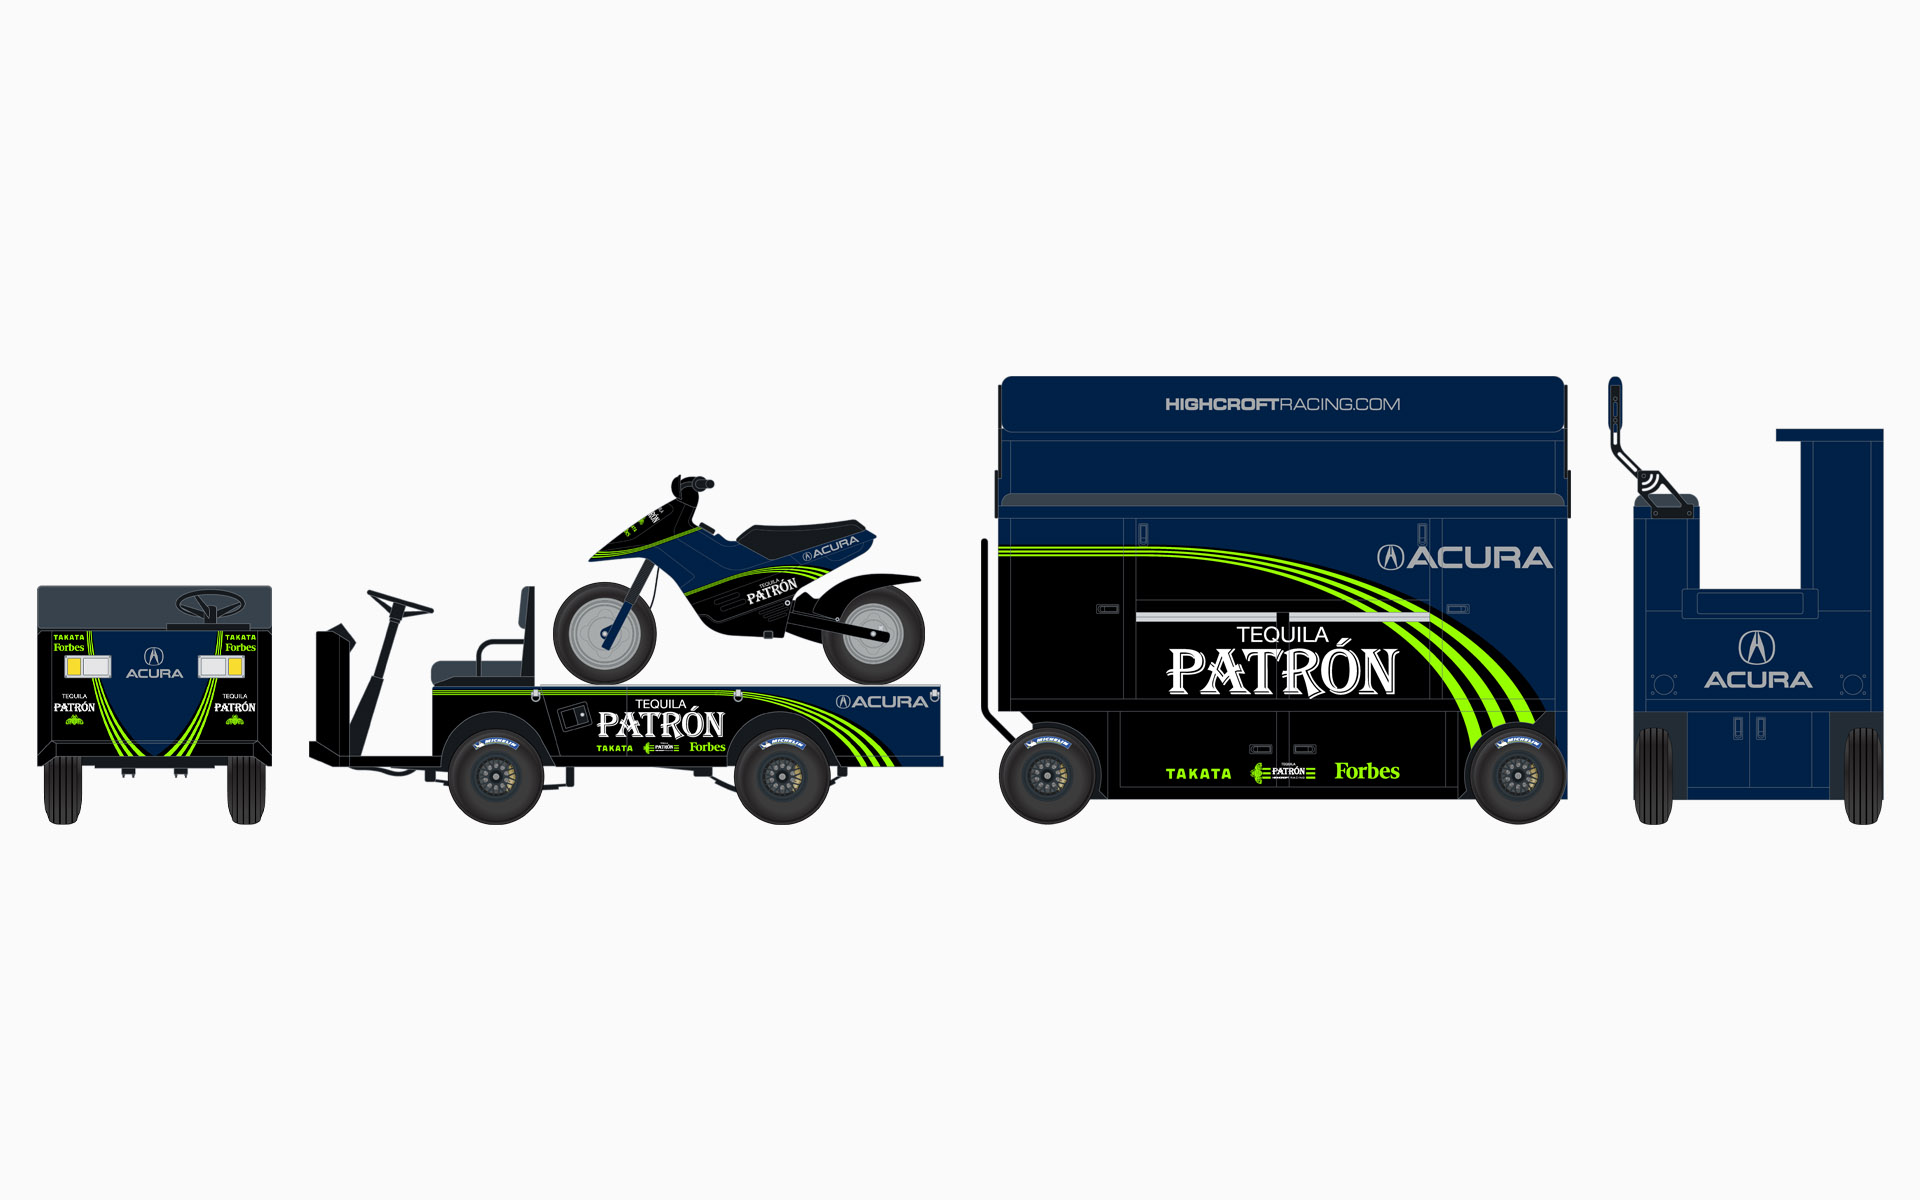 2008 Pátron Highcroft Racing Pit Equipment Livery Elevations